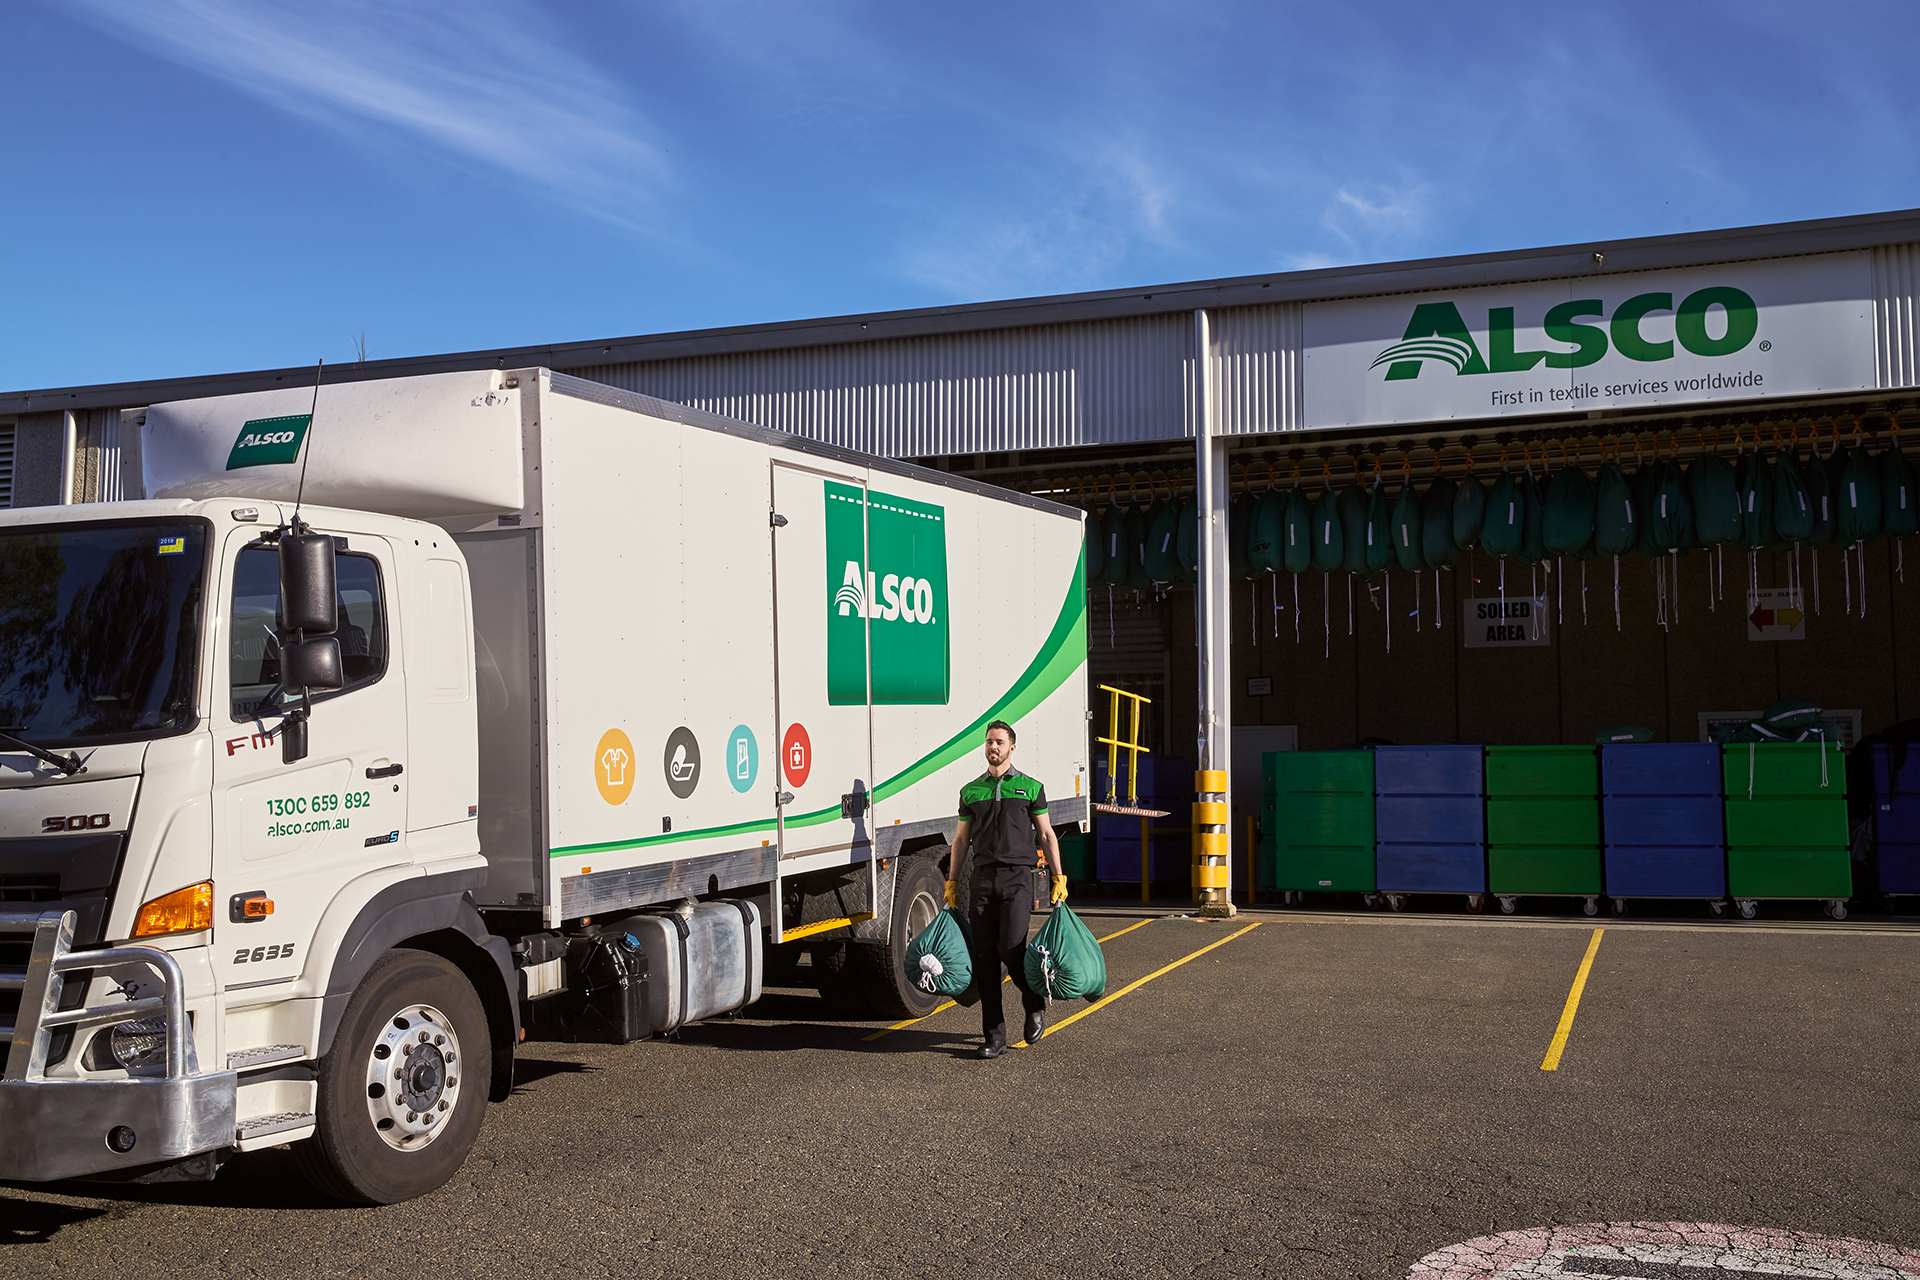 alsco_truck_factory